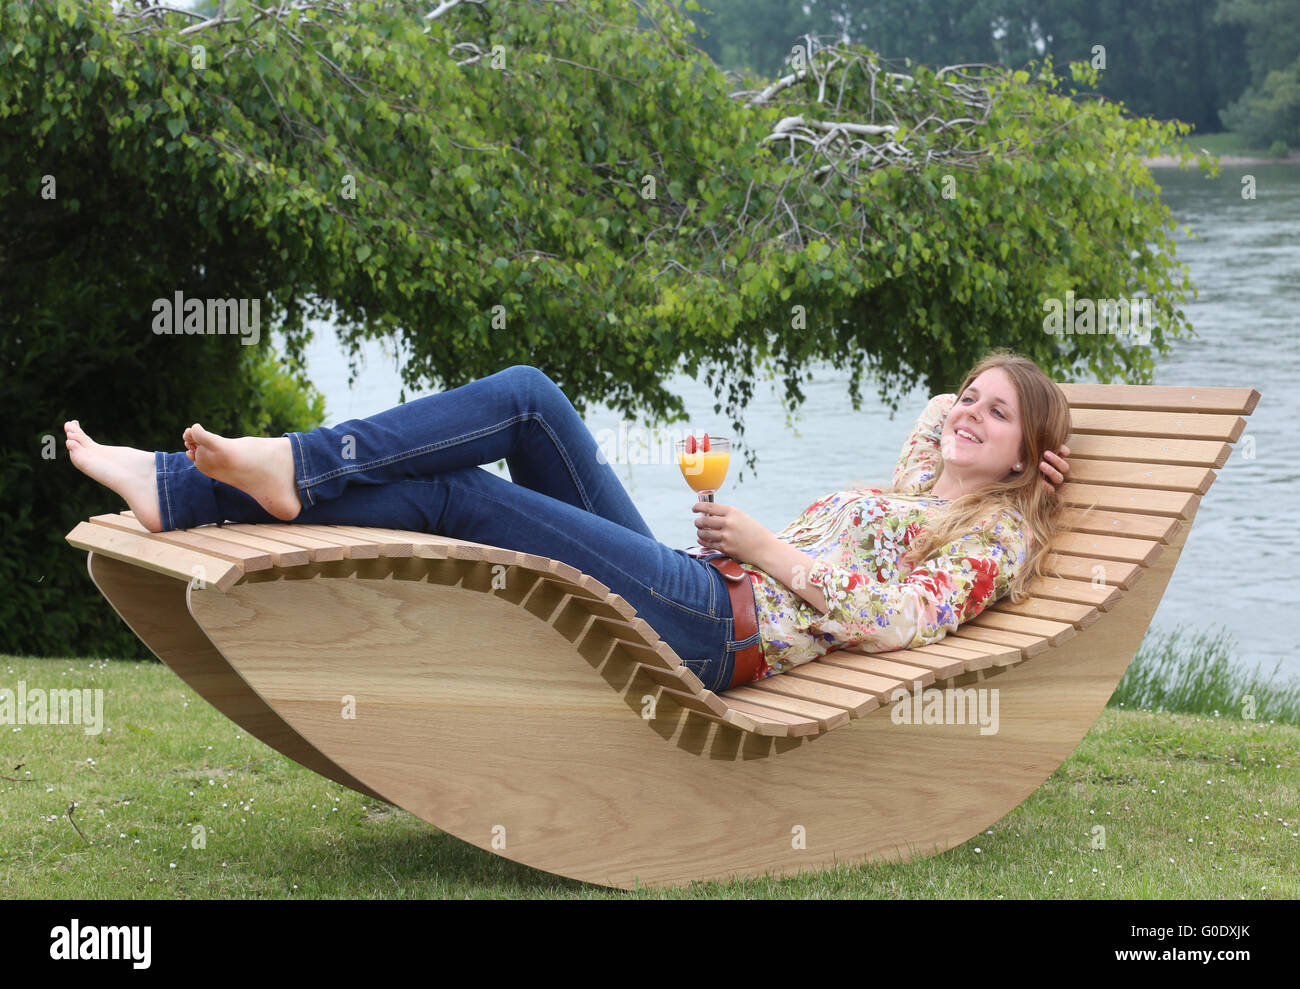 Wooden Sunbed - Stock Image